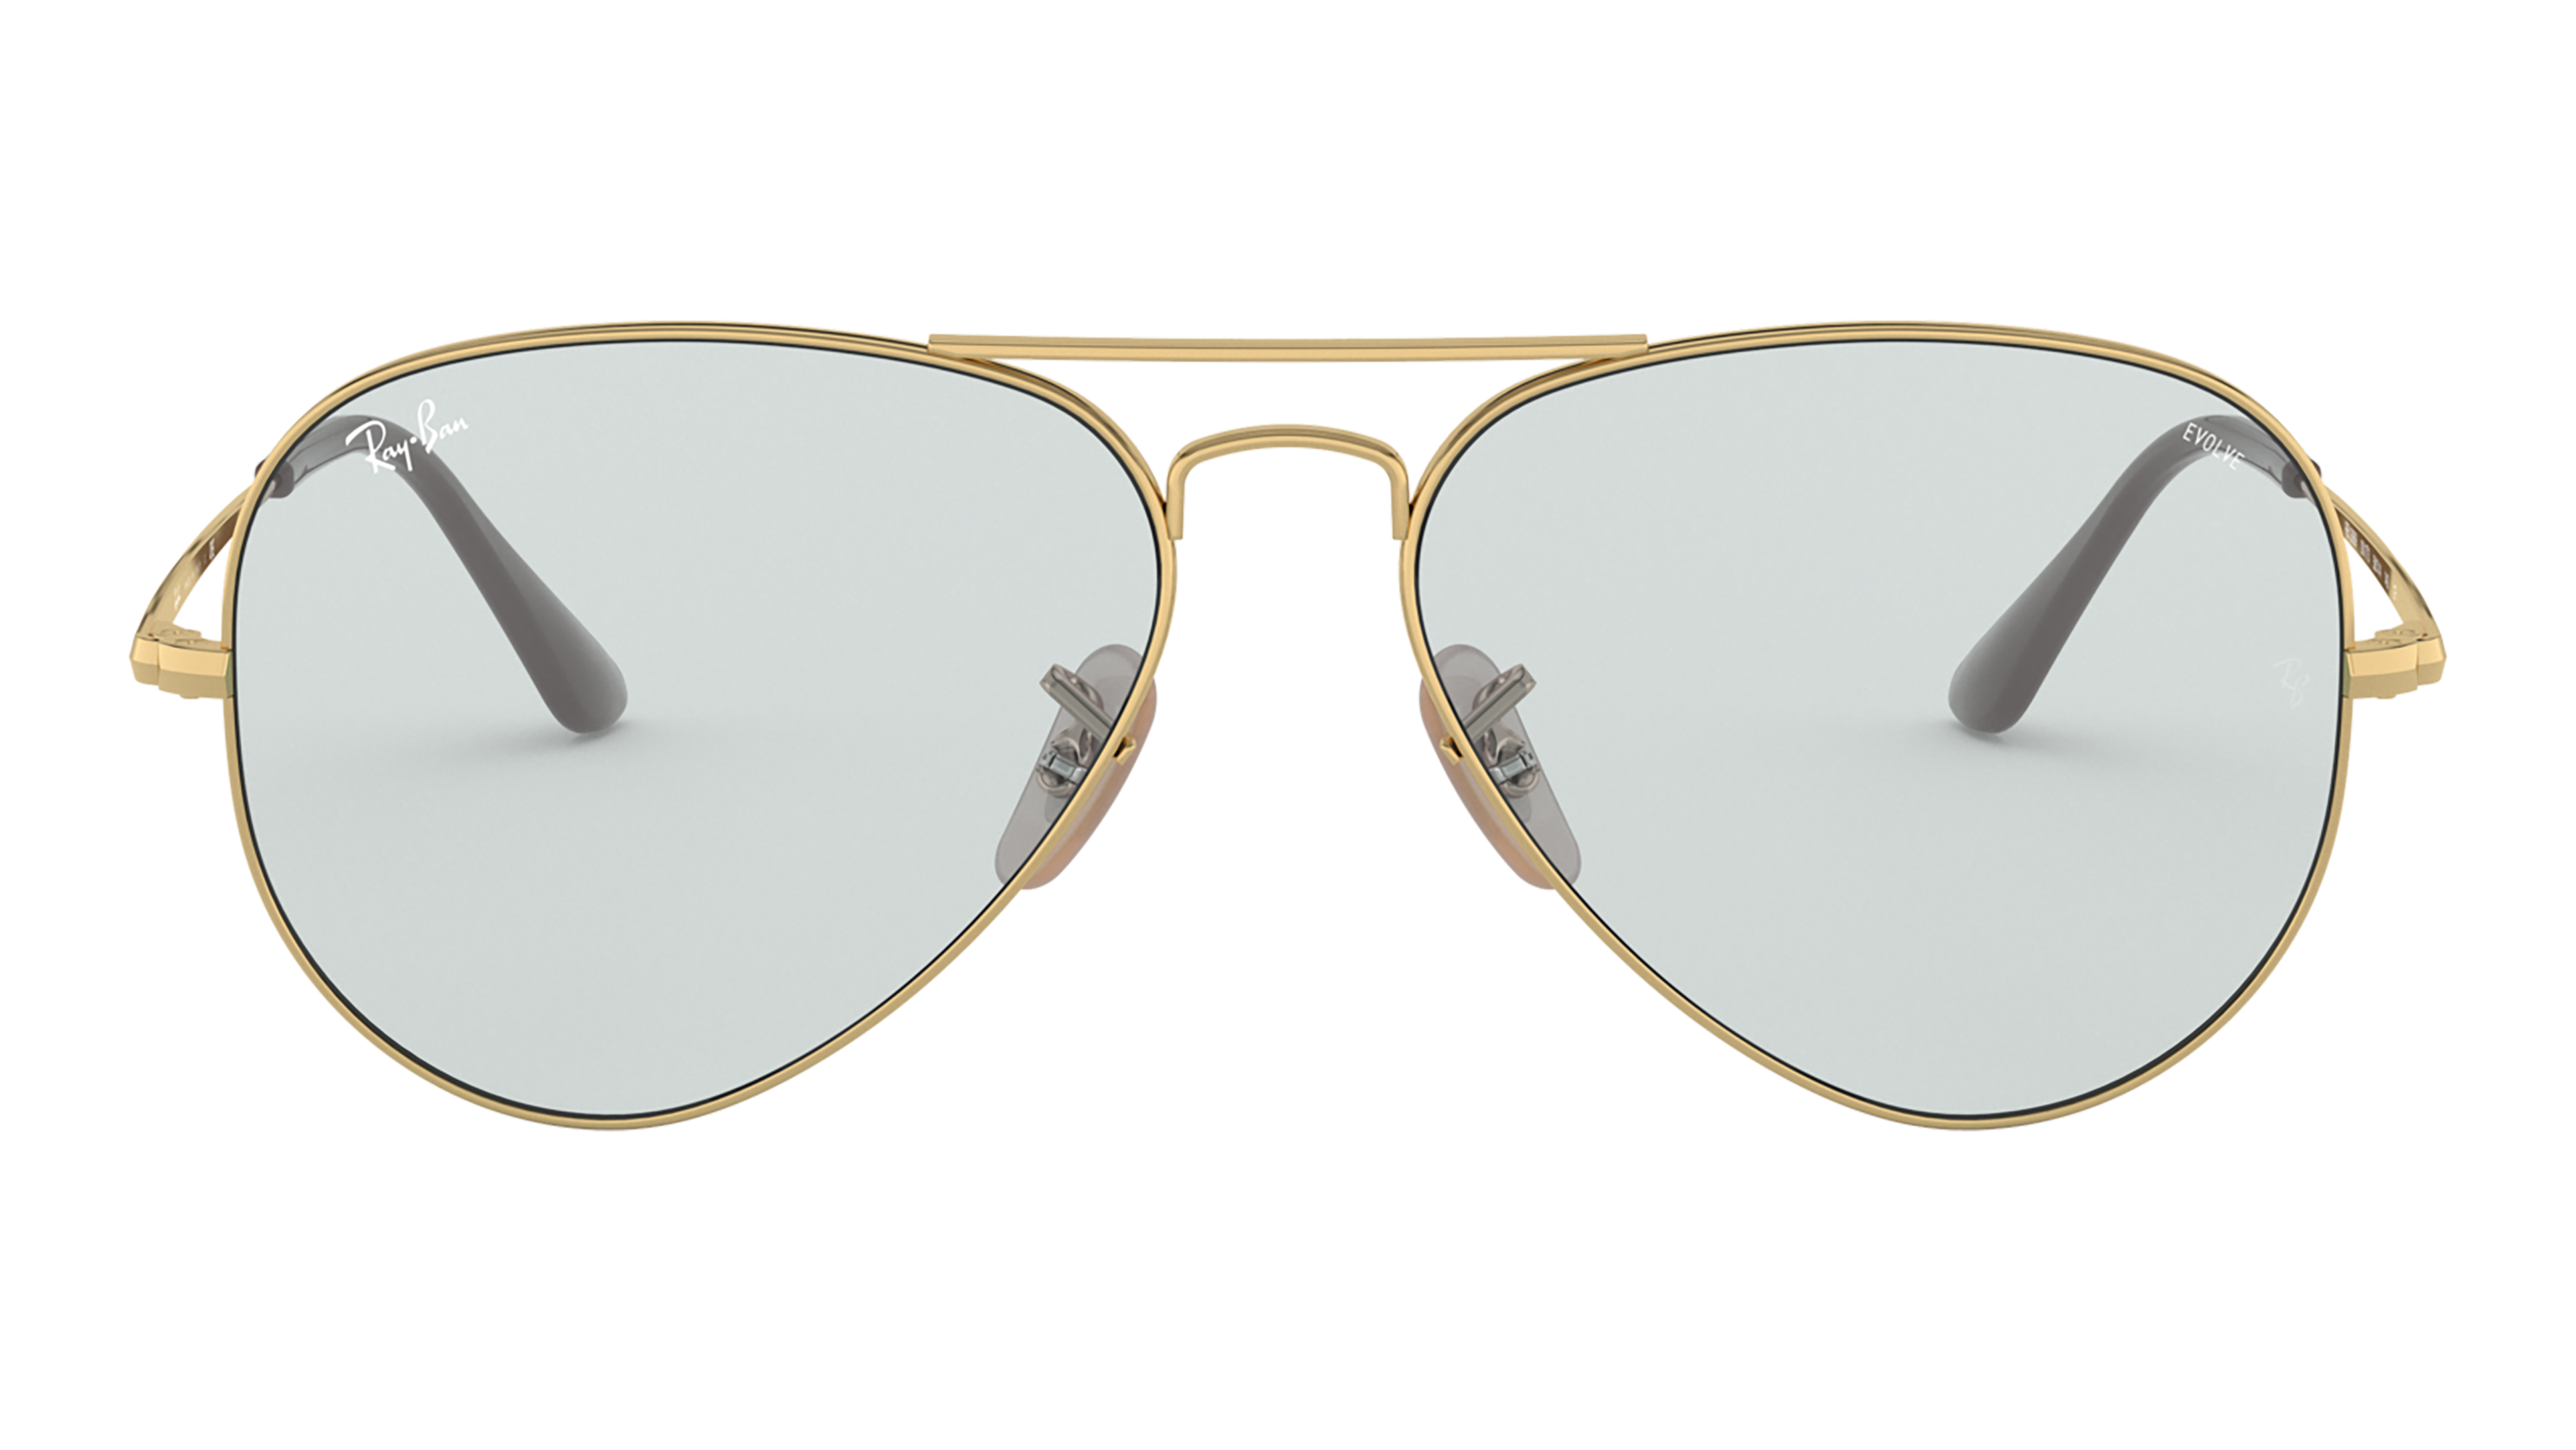 Front Ray-Ban Ray-Ban 0RB3689 001/T3 58/14 Goud/Blauw